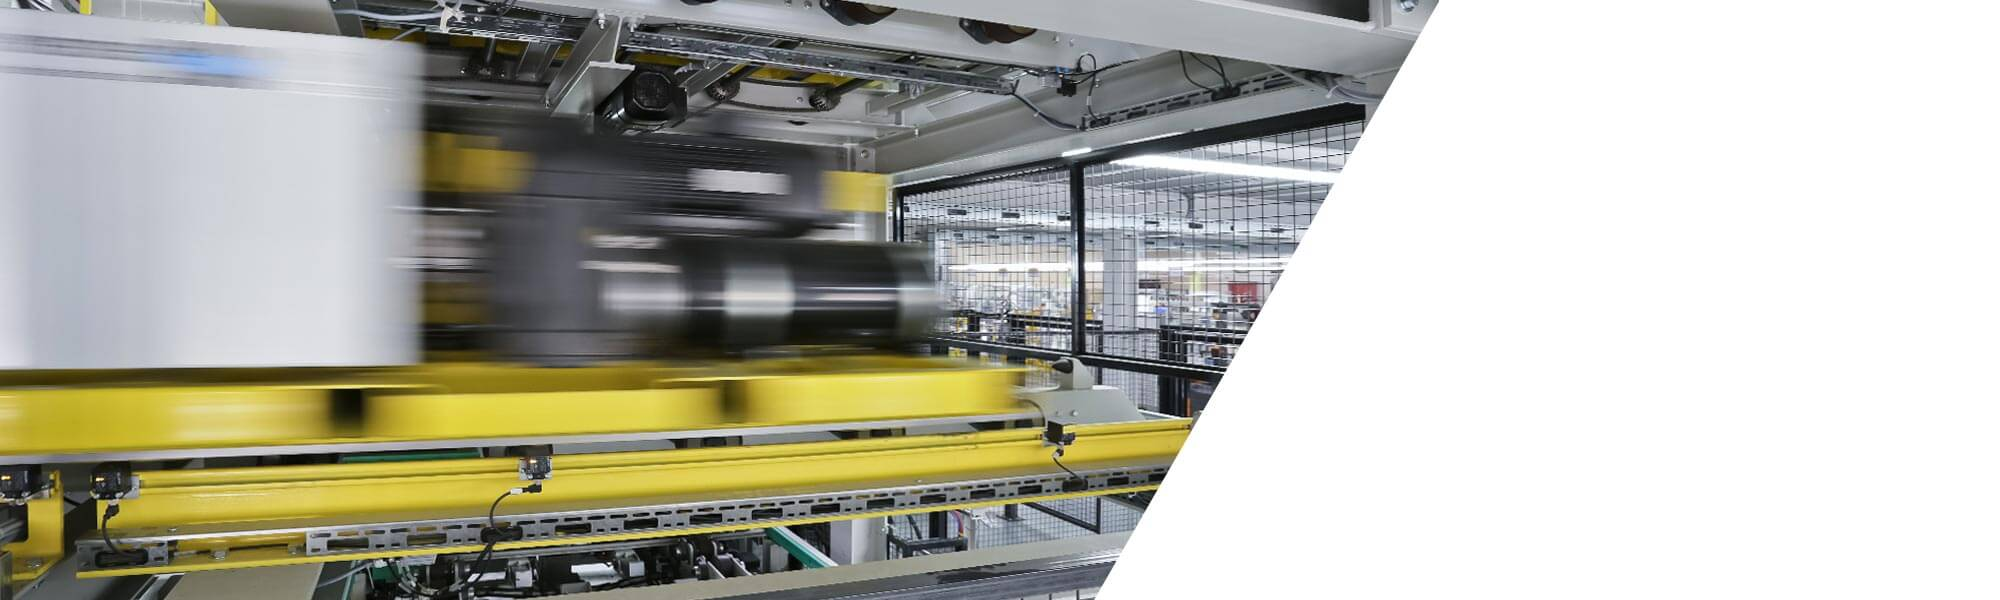 Automated production of insulated door elements with different curing times